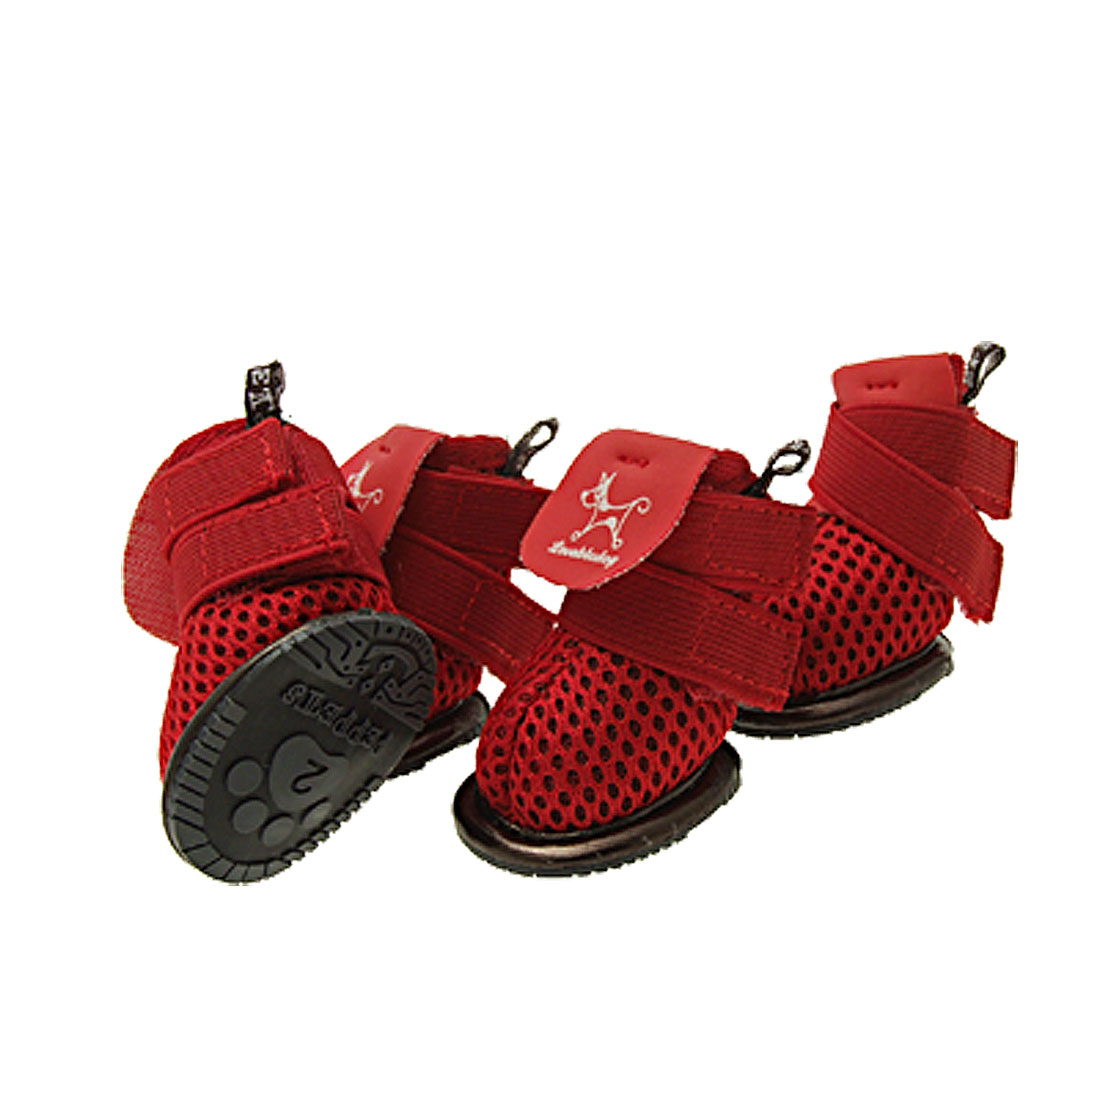 Red Pet Boots Anti-slip Sport Sneakers Apparel Size #2 Dog Shoes